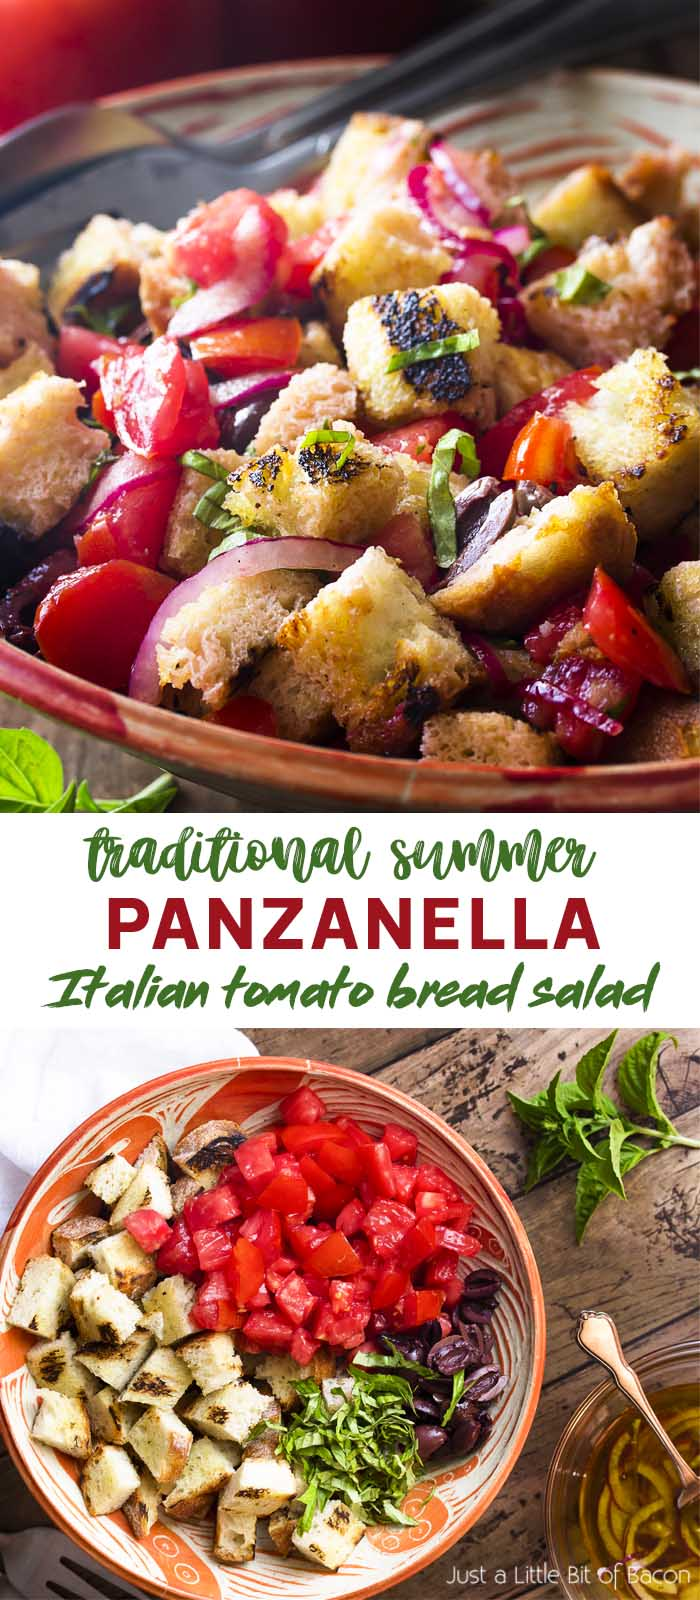 Two views of tomato bread salad in a serving bowl with text overlay - Panzanella.